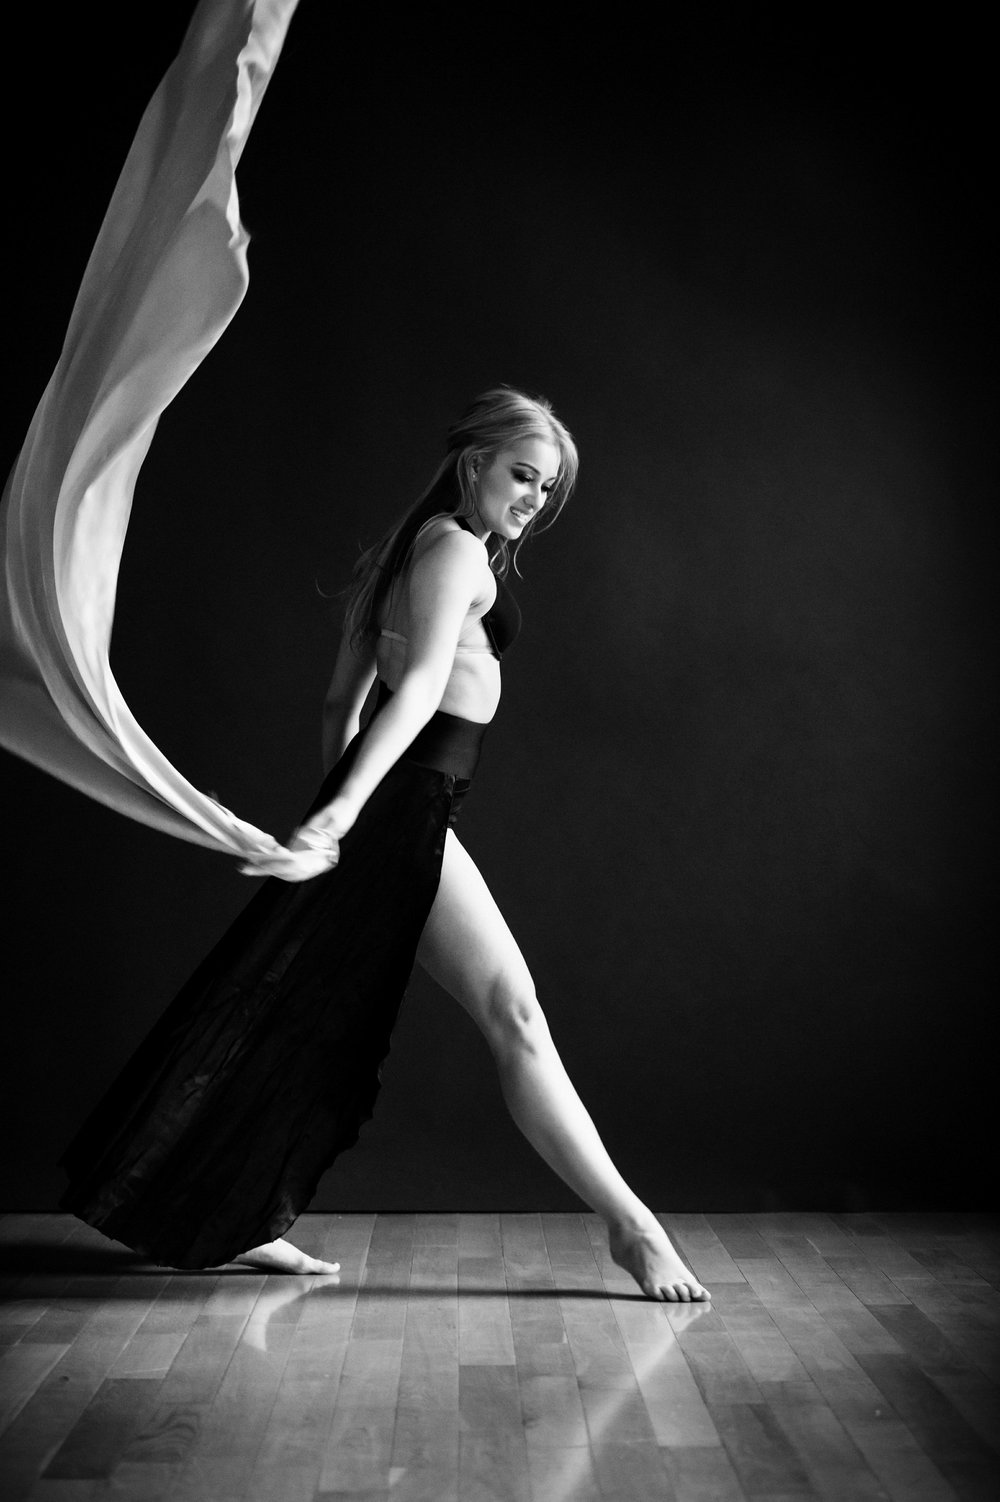 nEO_IMG_Xing Photography Soul of Dance - Haley-45-BW.jpg